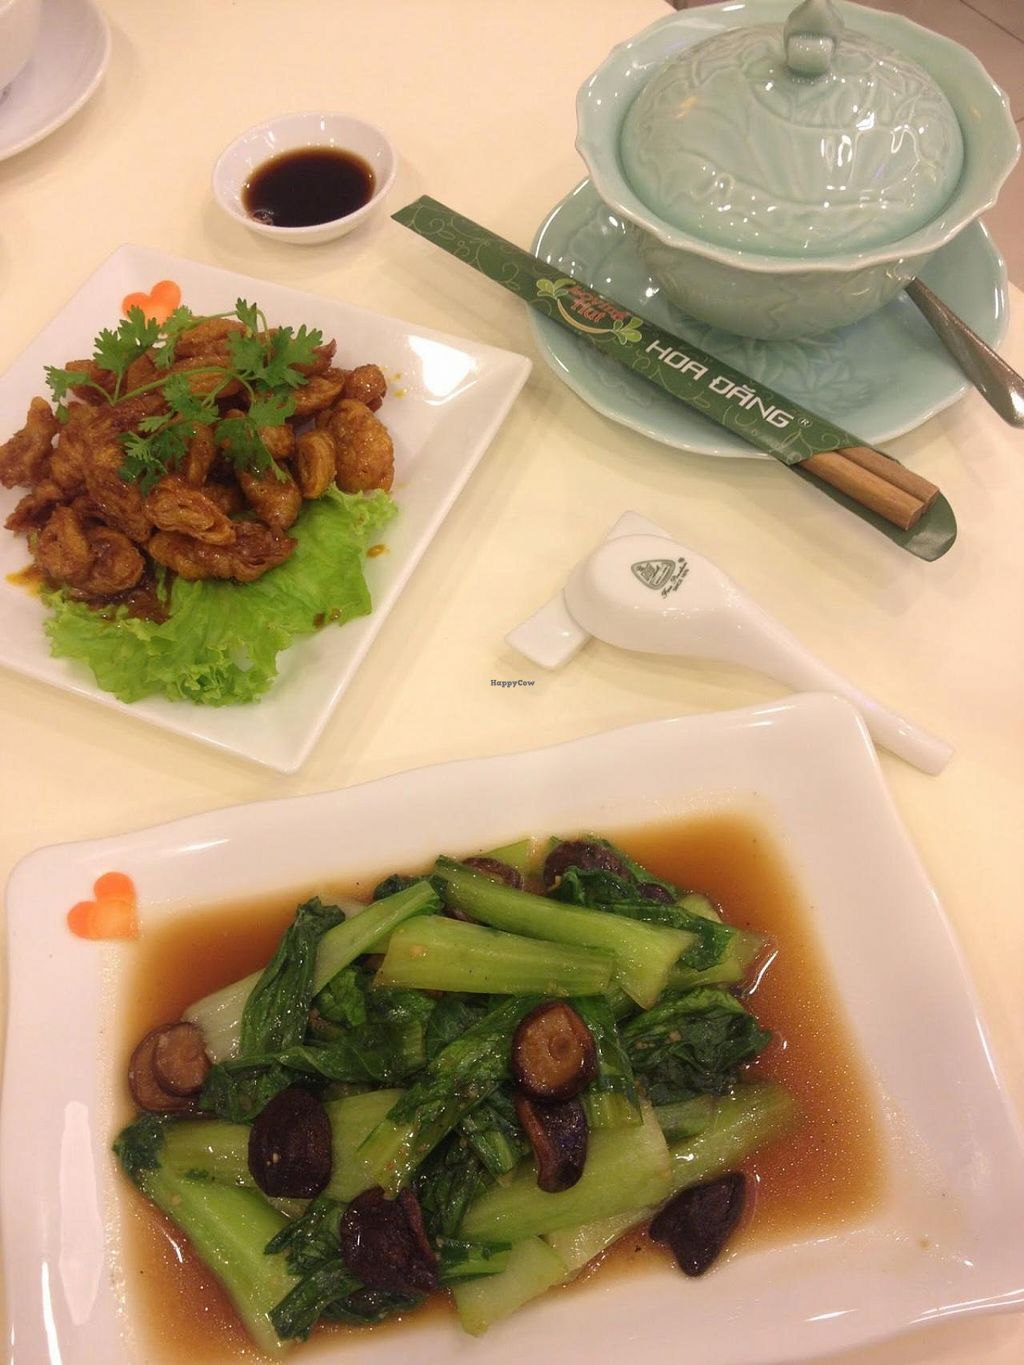 """Photo of Loving Hut Hoa Dang  by <a href=""""/members/profile/jojoinbrighton"""">jojoinbrighton</a> <br/>Gluten in coconut water (sounds weird, tastes delicious) and pak choi with black mushrooms <br/> May 3, 2015  - <a href='/contact/abuse/image/9742/101057'>Report</a>"""